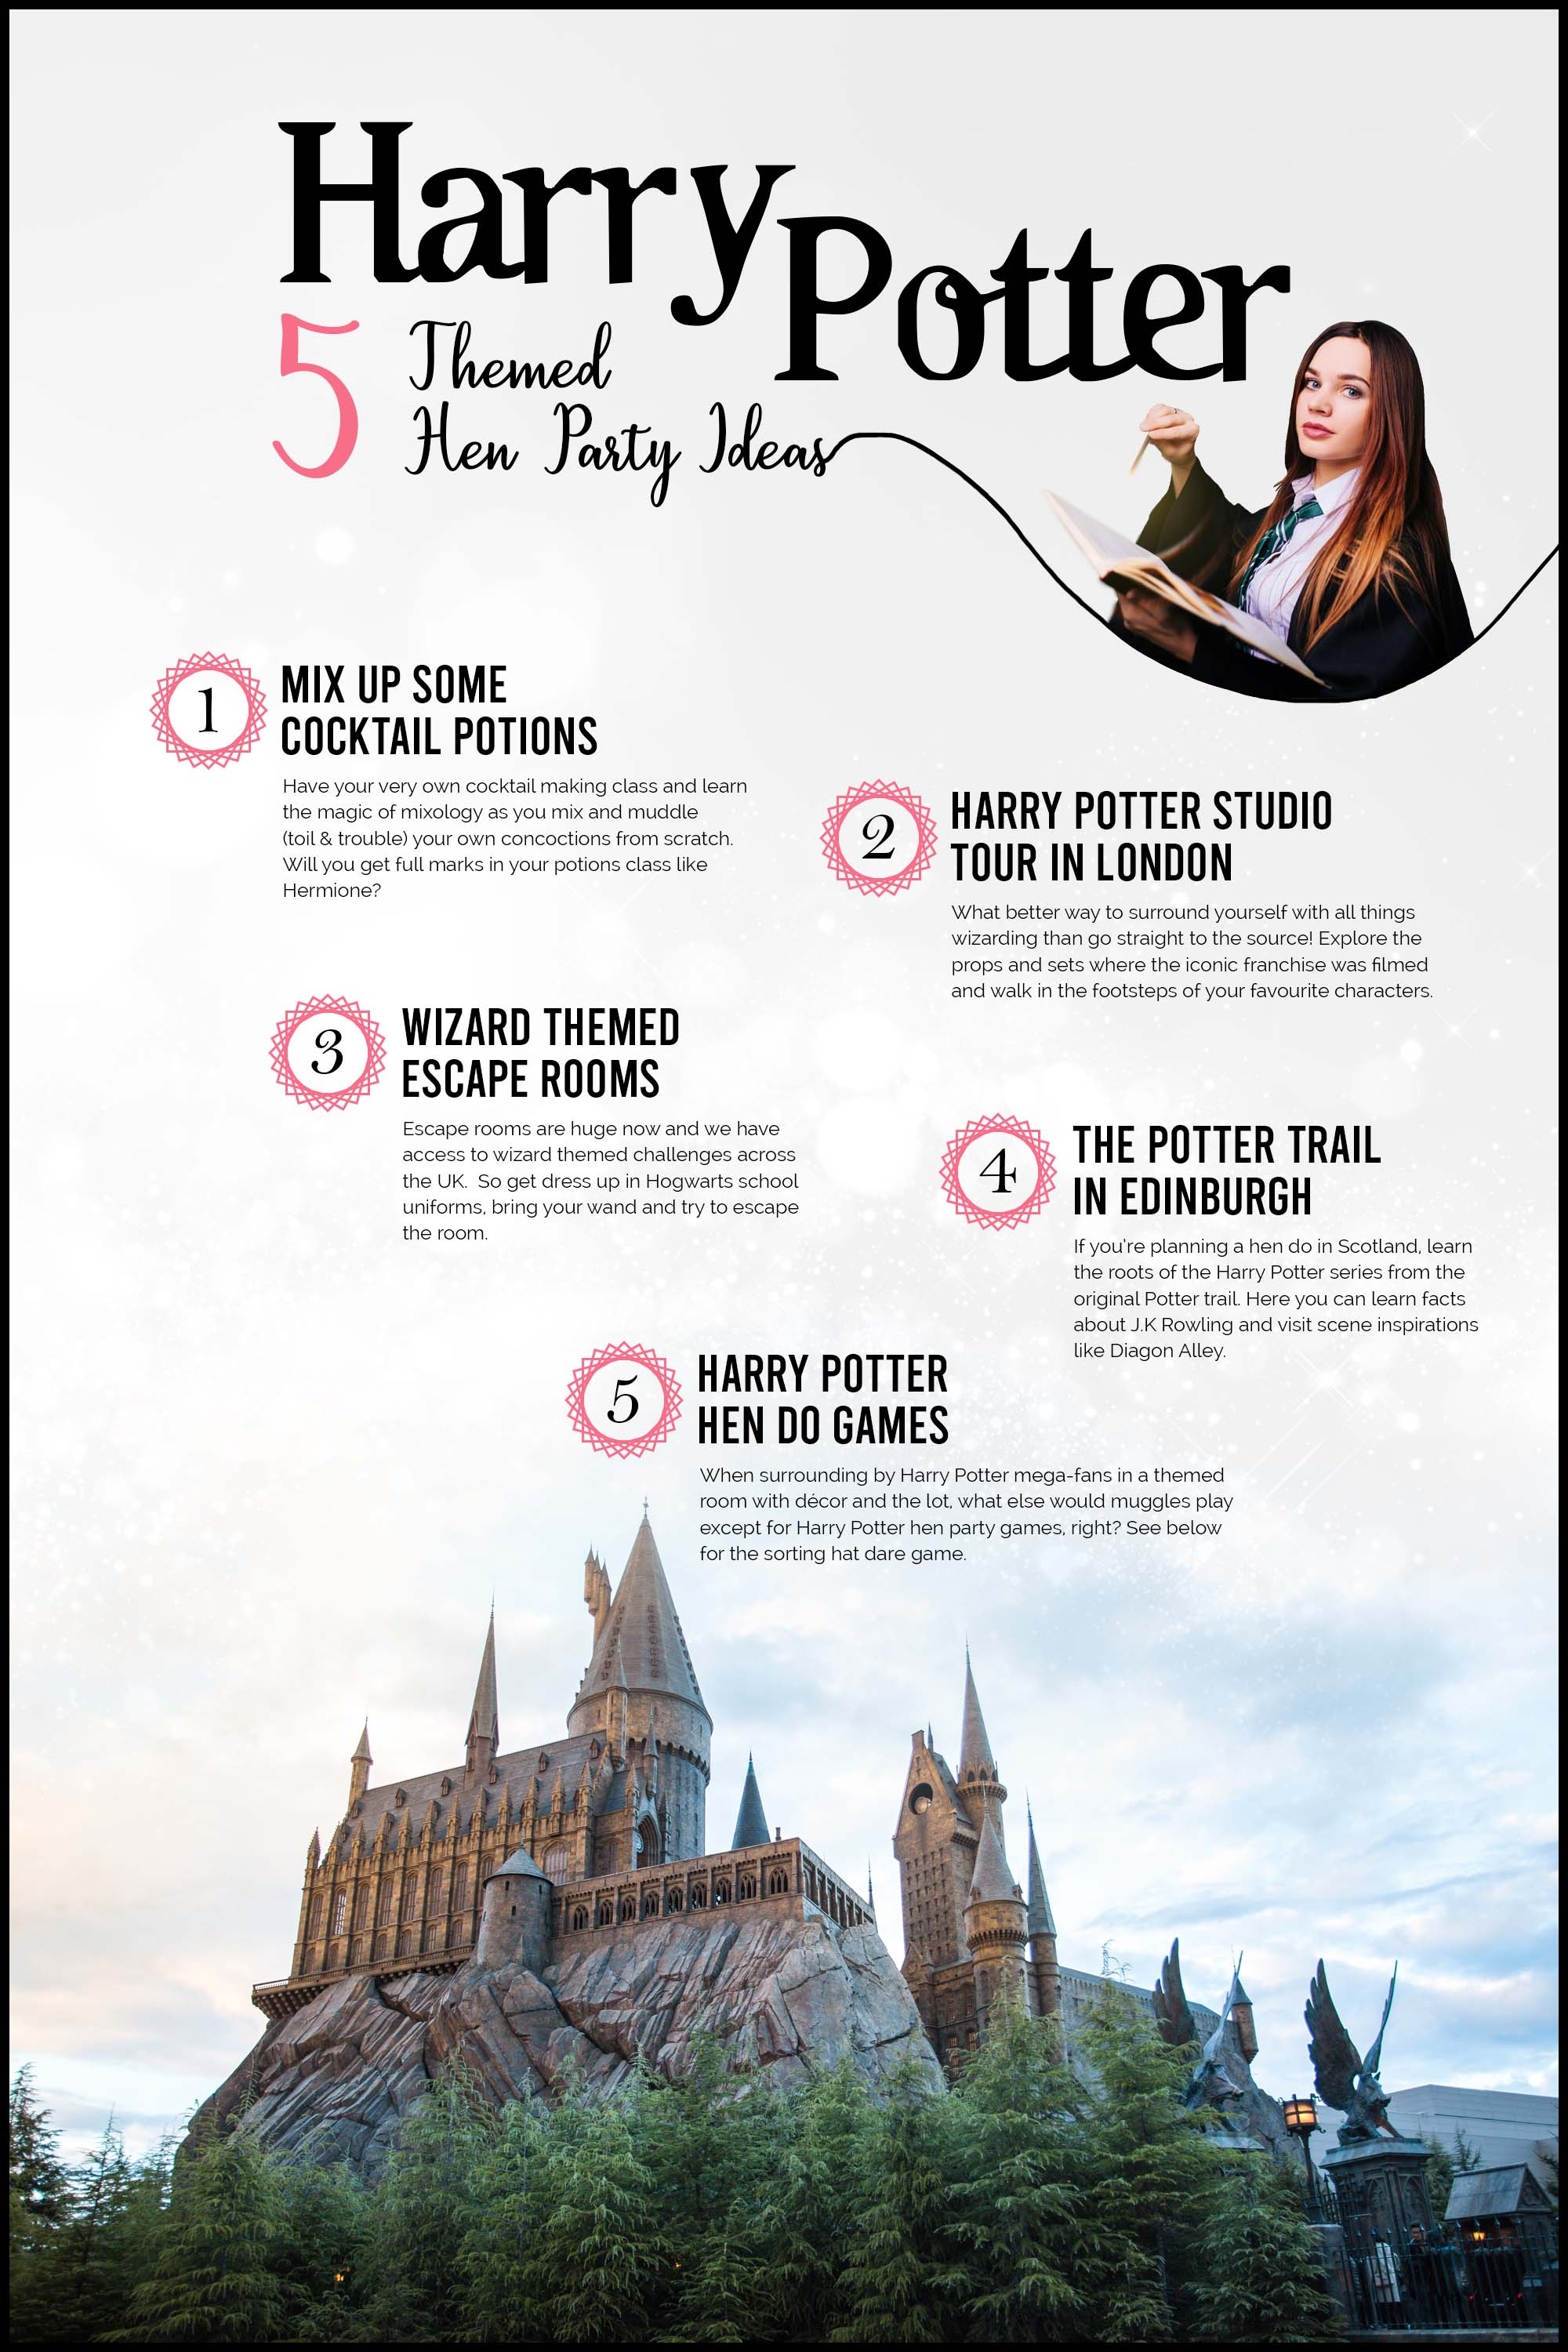 Harry Potter Themed Hen Party Ideas